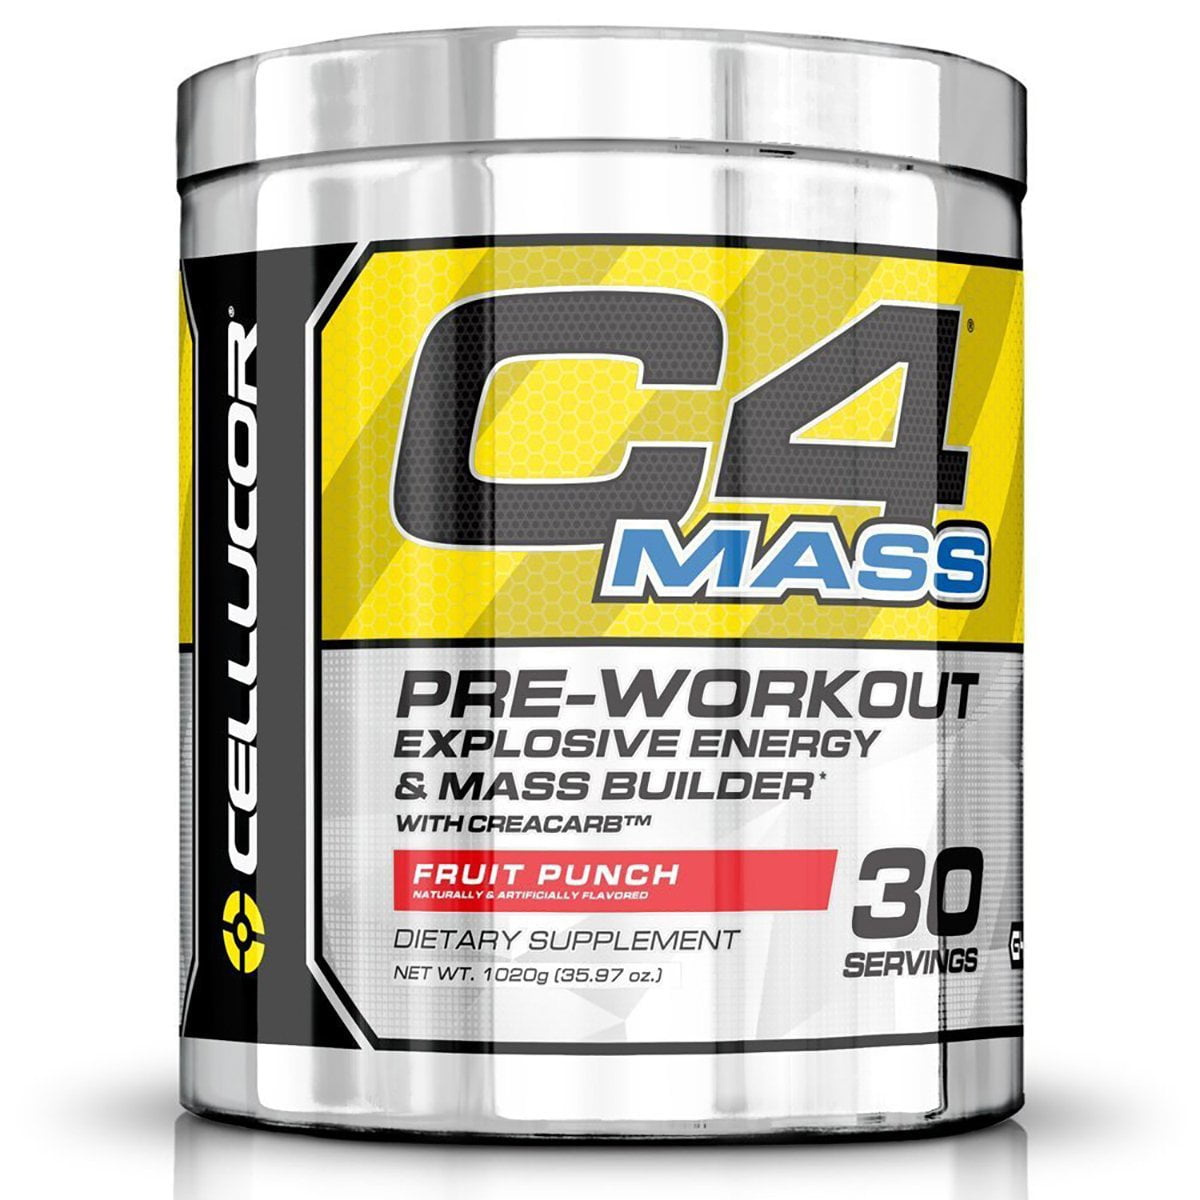 Fat burner supplement price in india image 7